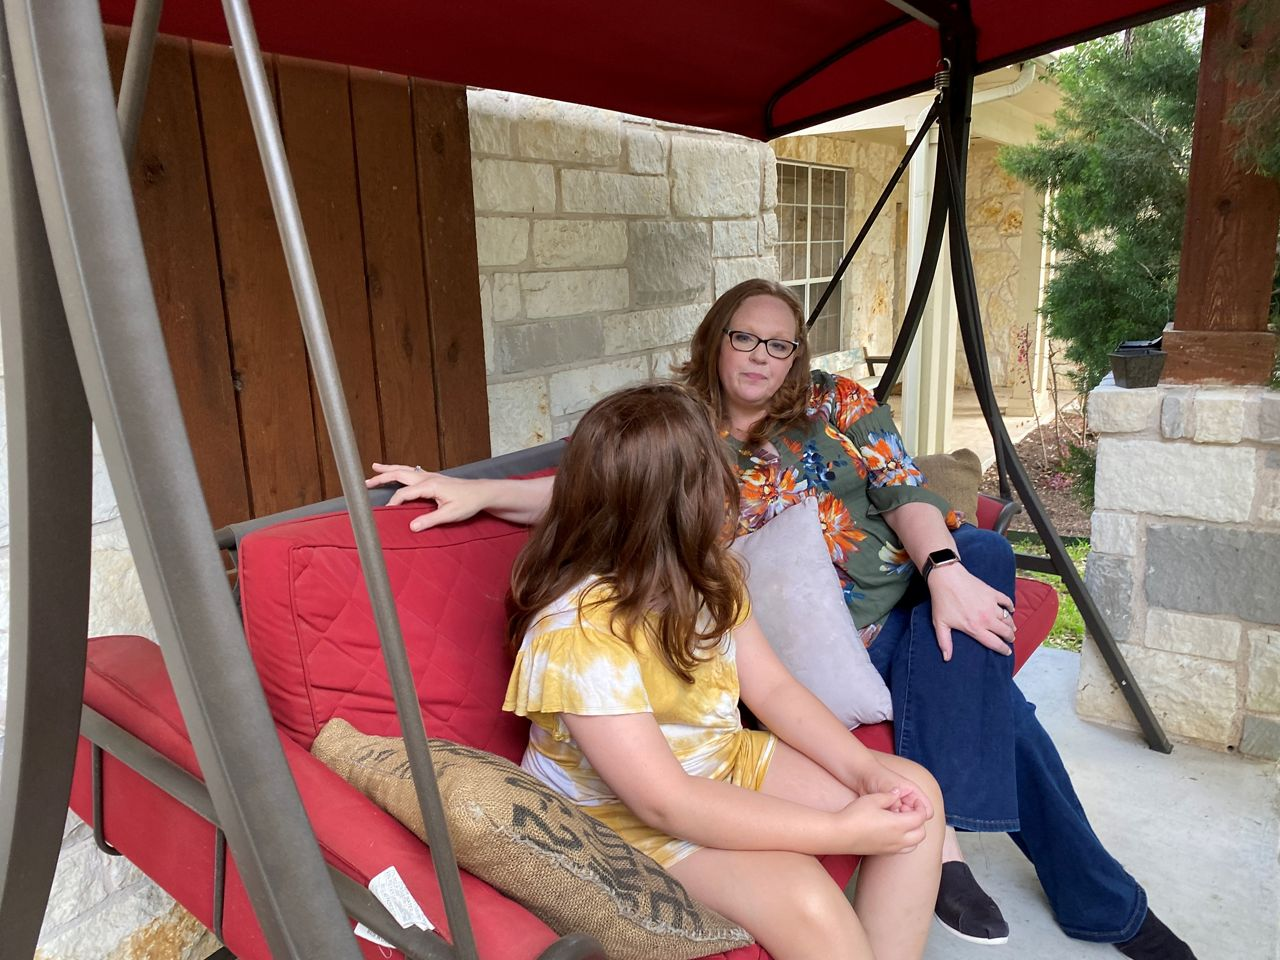 Tammy Heinz swinging on bench with daughter outside their Austin home. (Spectrum News 1/Monica Ortiz)